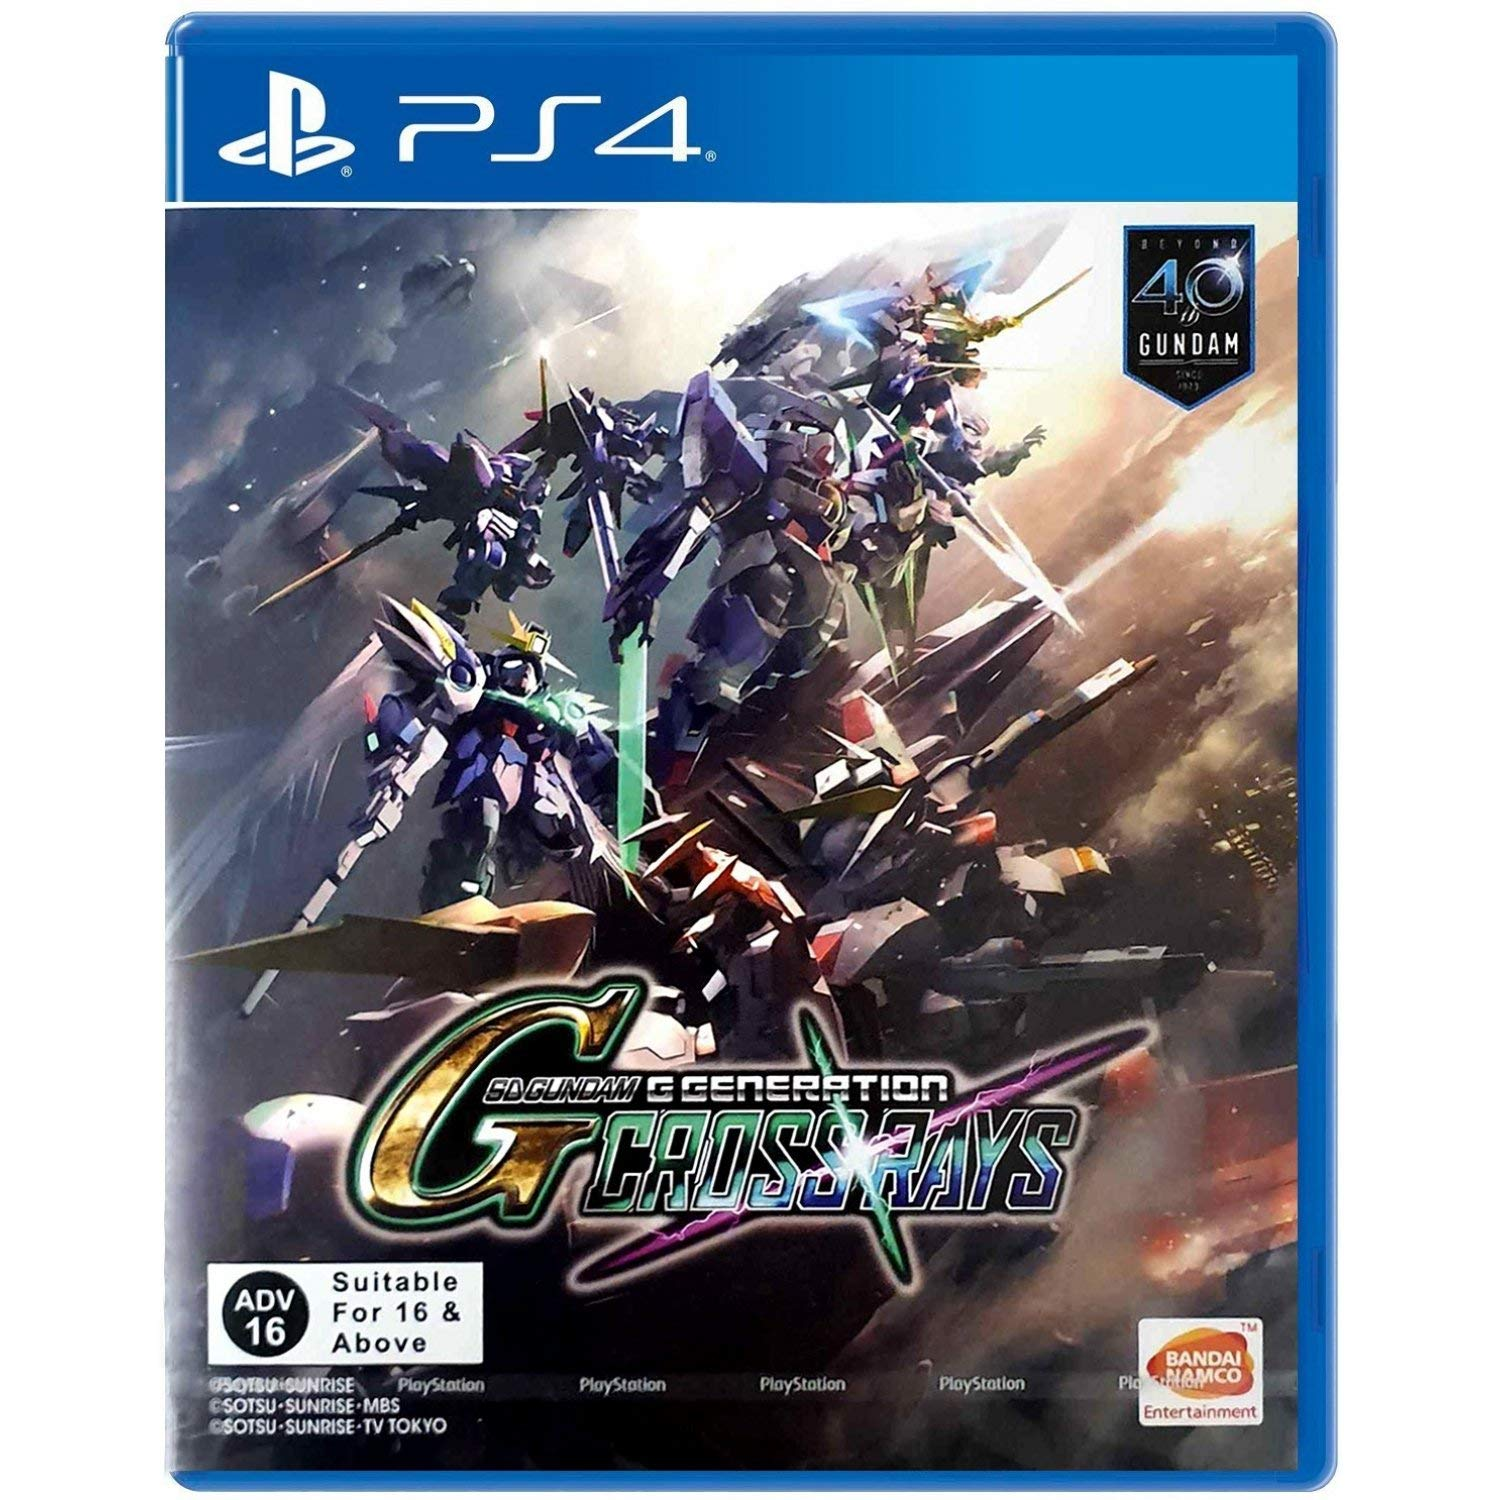 SD Gundam Soldering G Generations Crossrays 4 English At the price of surprise for PlayStation